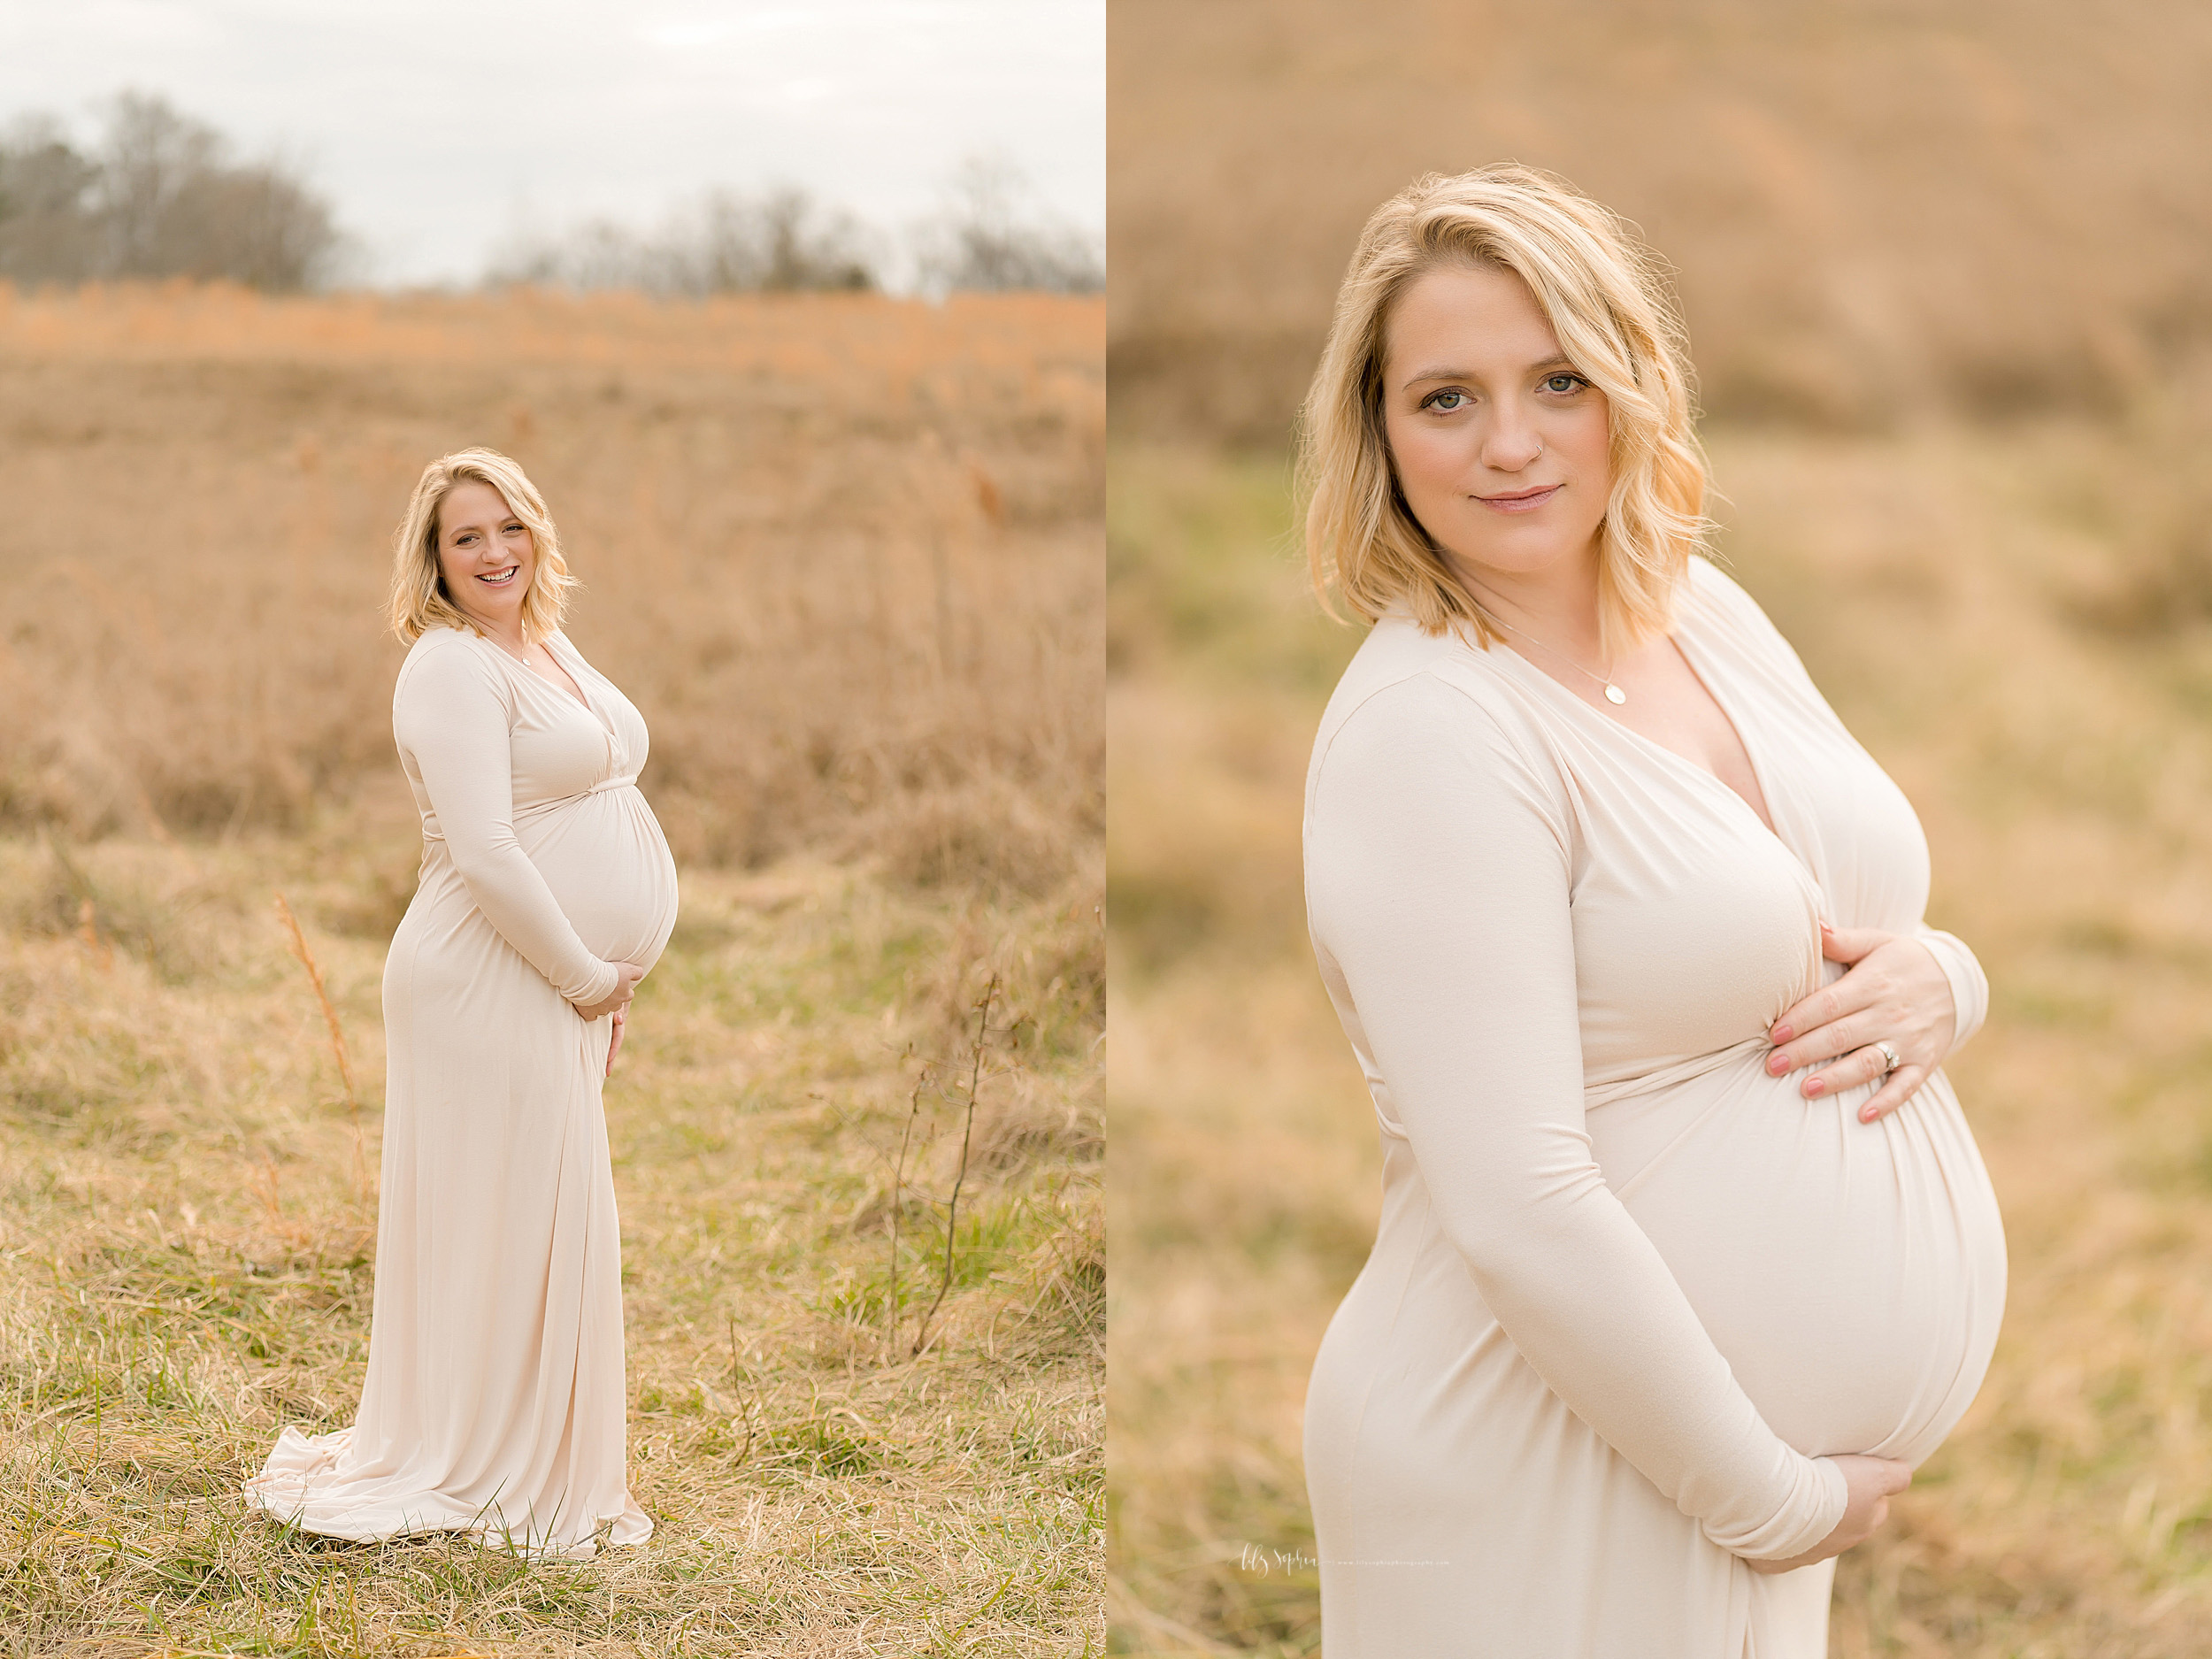 Split profile image of a pregnant woman in a field.  The blonde haired woman is looking over her right shoulder as she holds her belly to reveal her pregnancy.  In the first image she is smiling.  In the second close-up image she is pensive as she awaits the birth of her newborn.